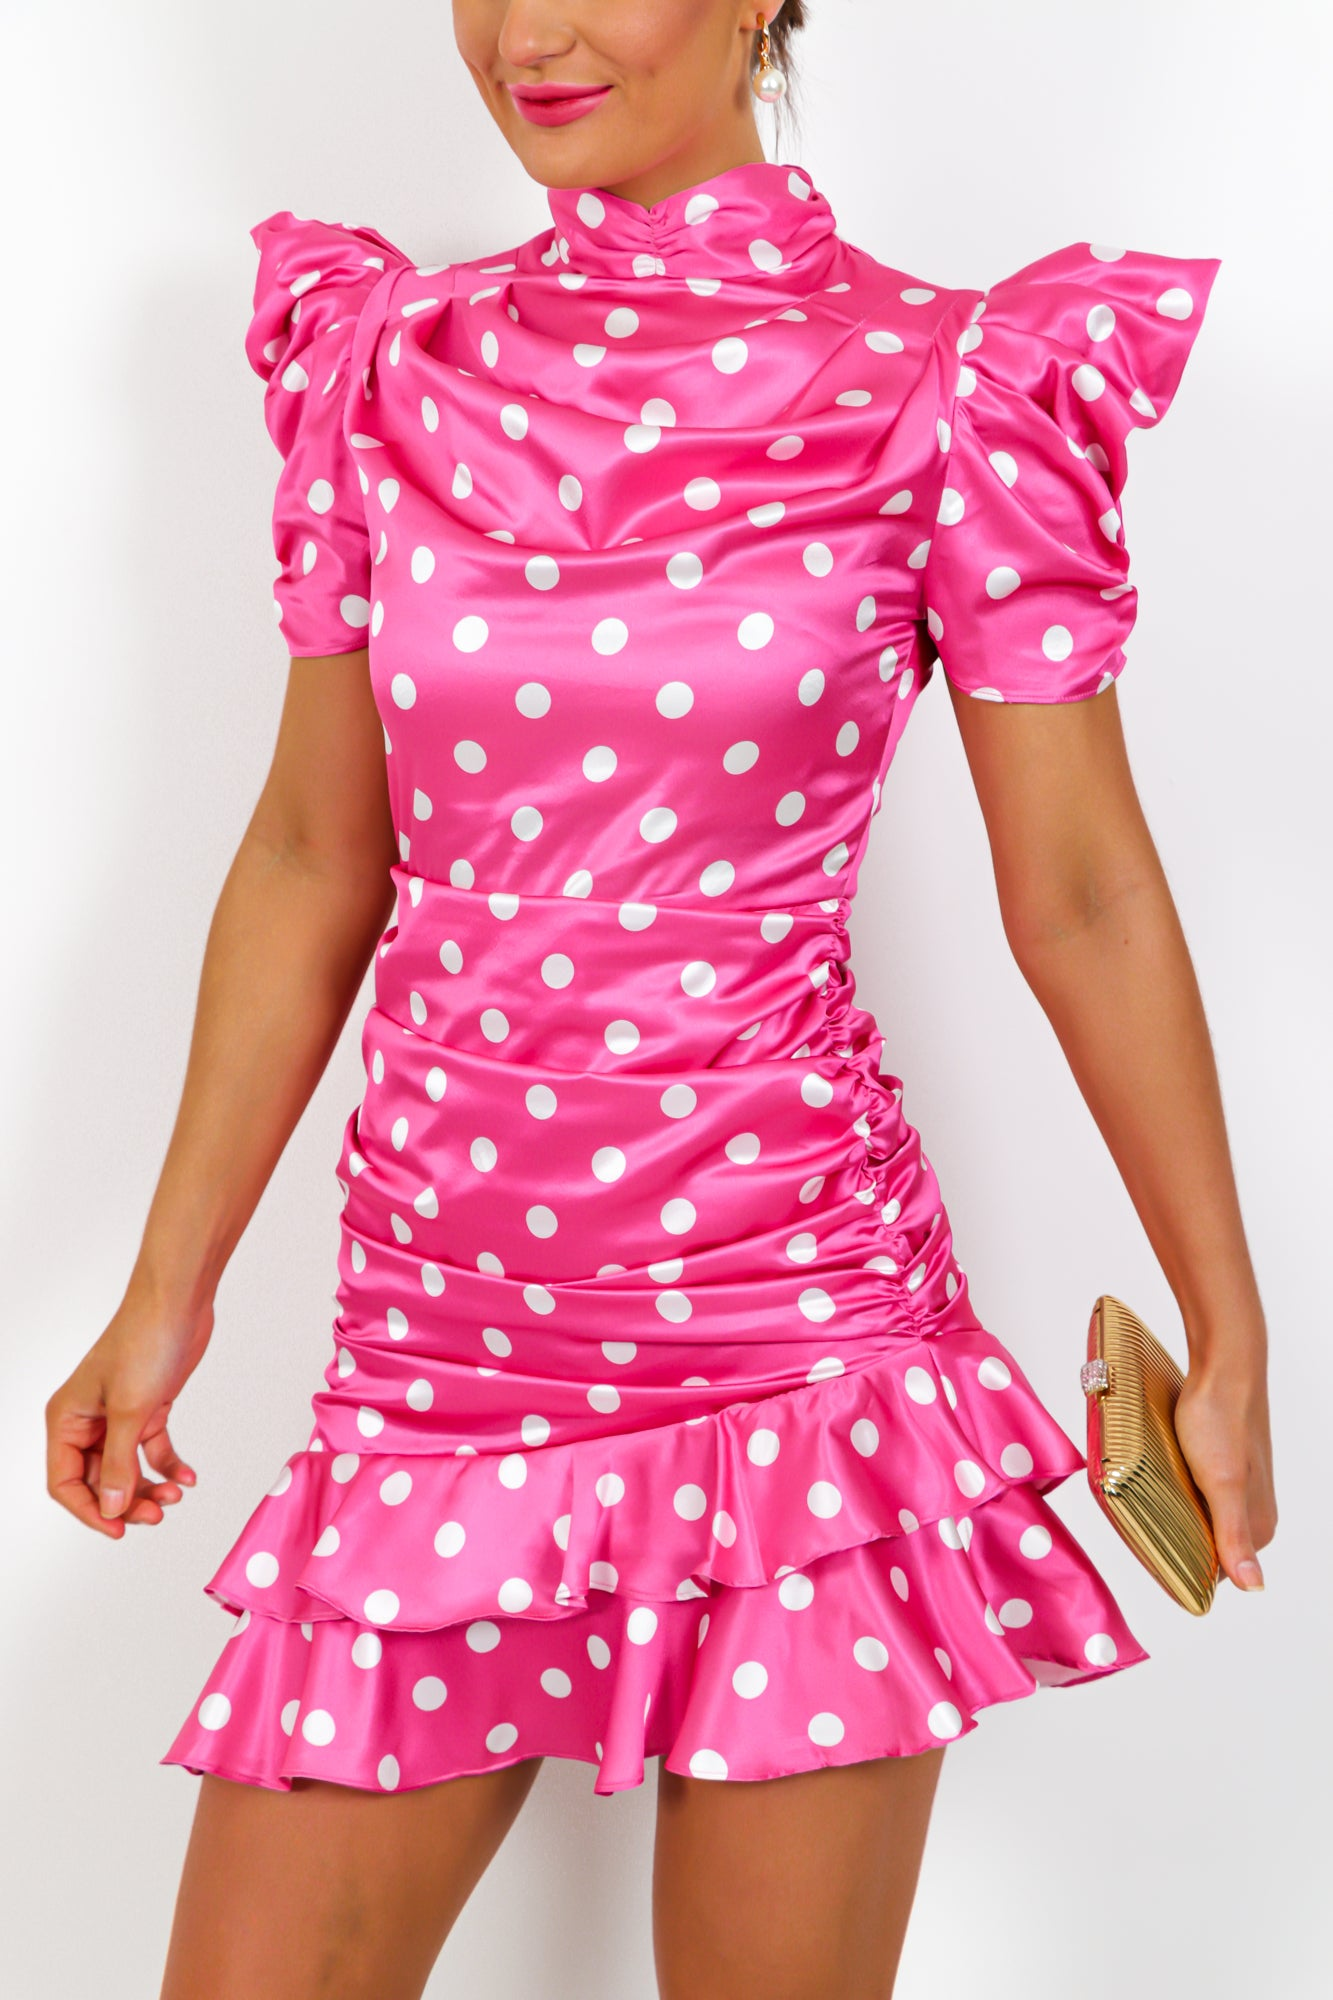 Senorita - Dress In PINK